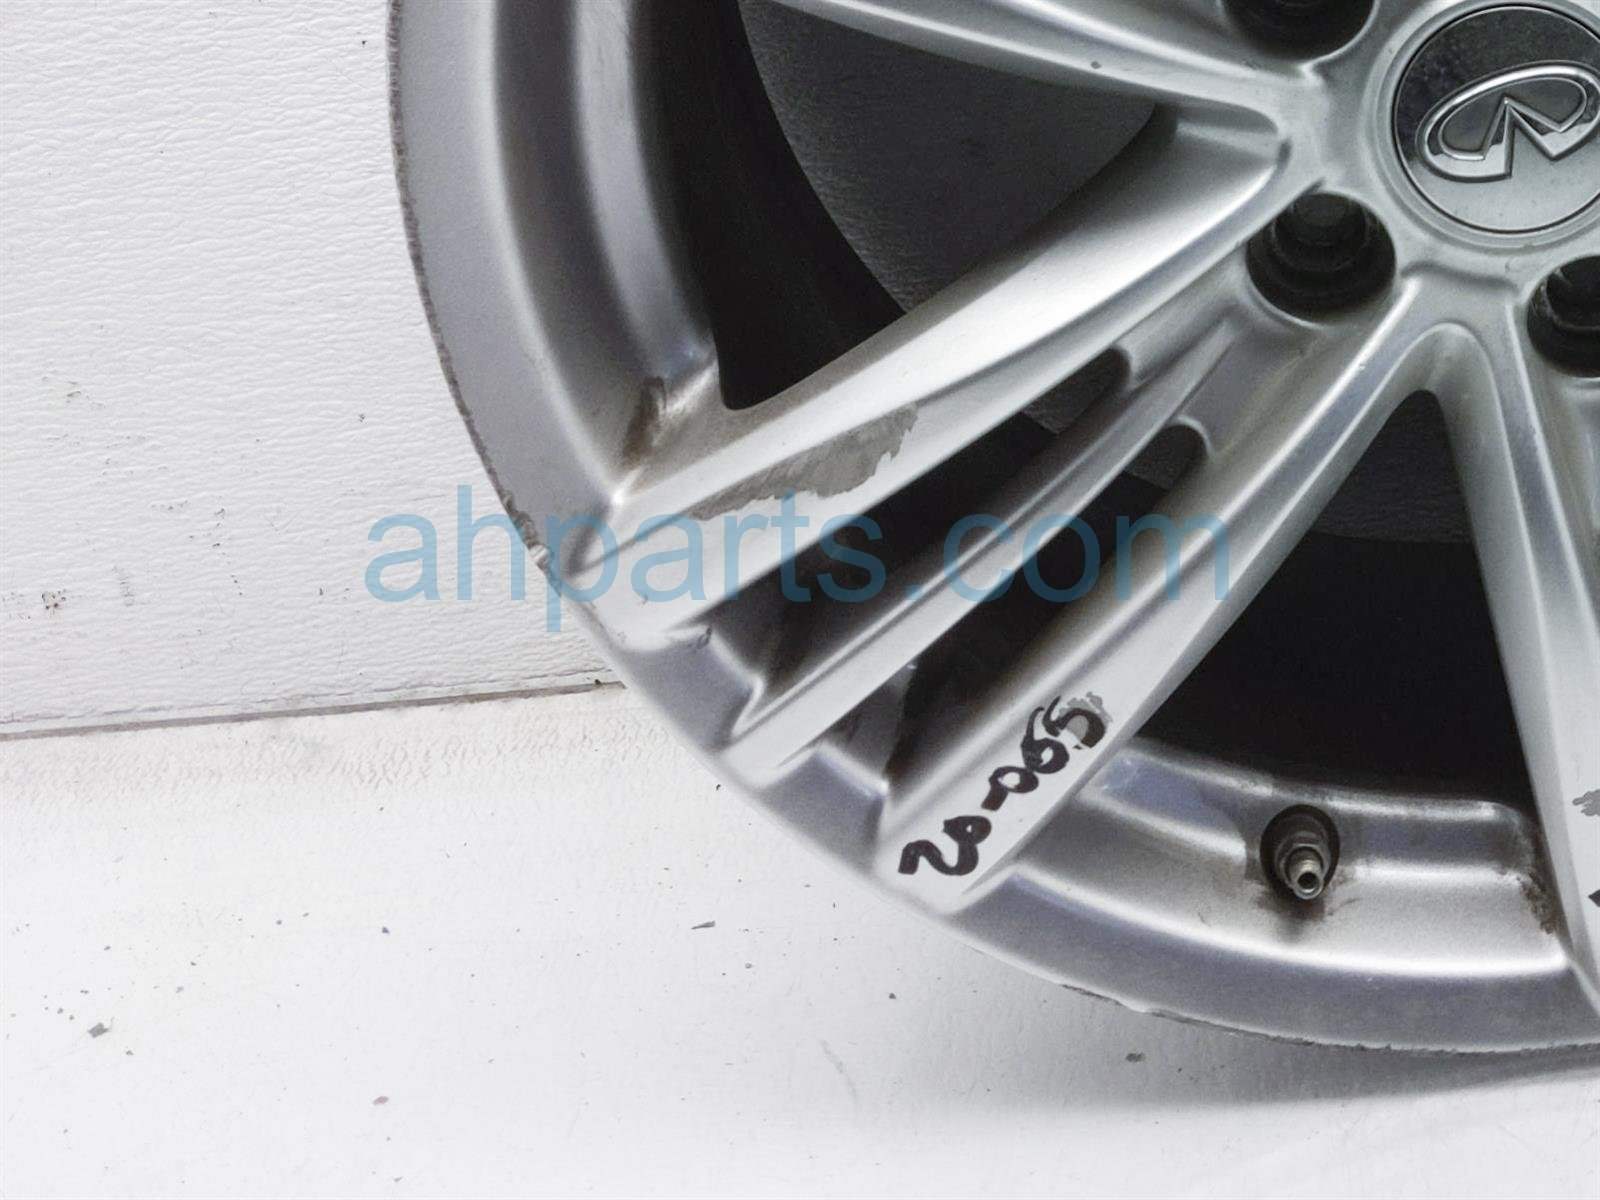 2011 Infiniti G37 Rear Passenger Wheel/rim   Curb Rash D0300 1NF8A Replacement